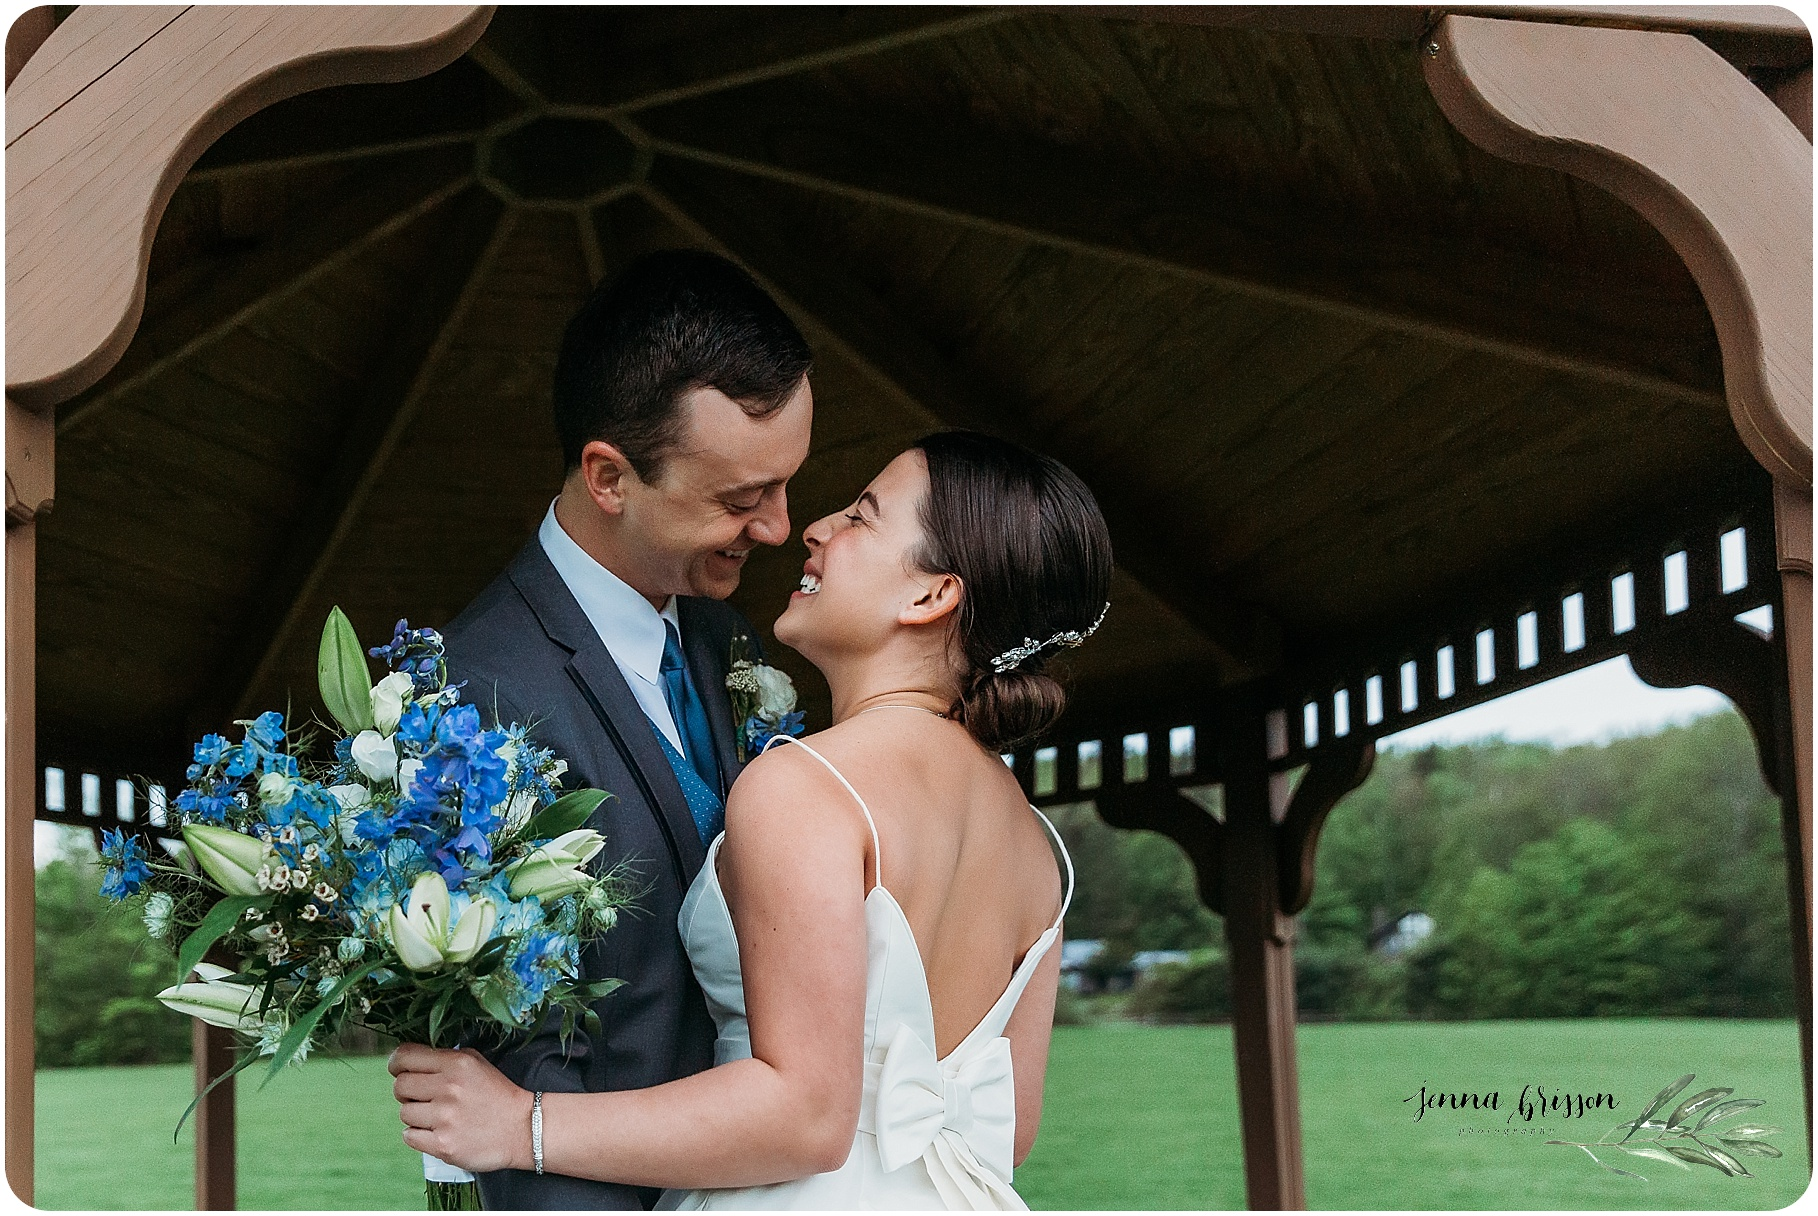 Vermont Elopement - Jenna Brisson Photography